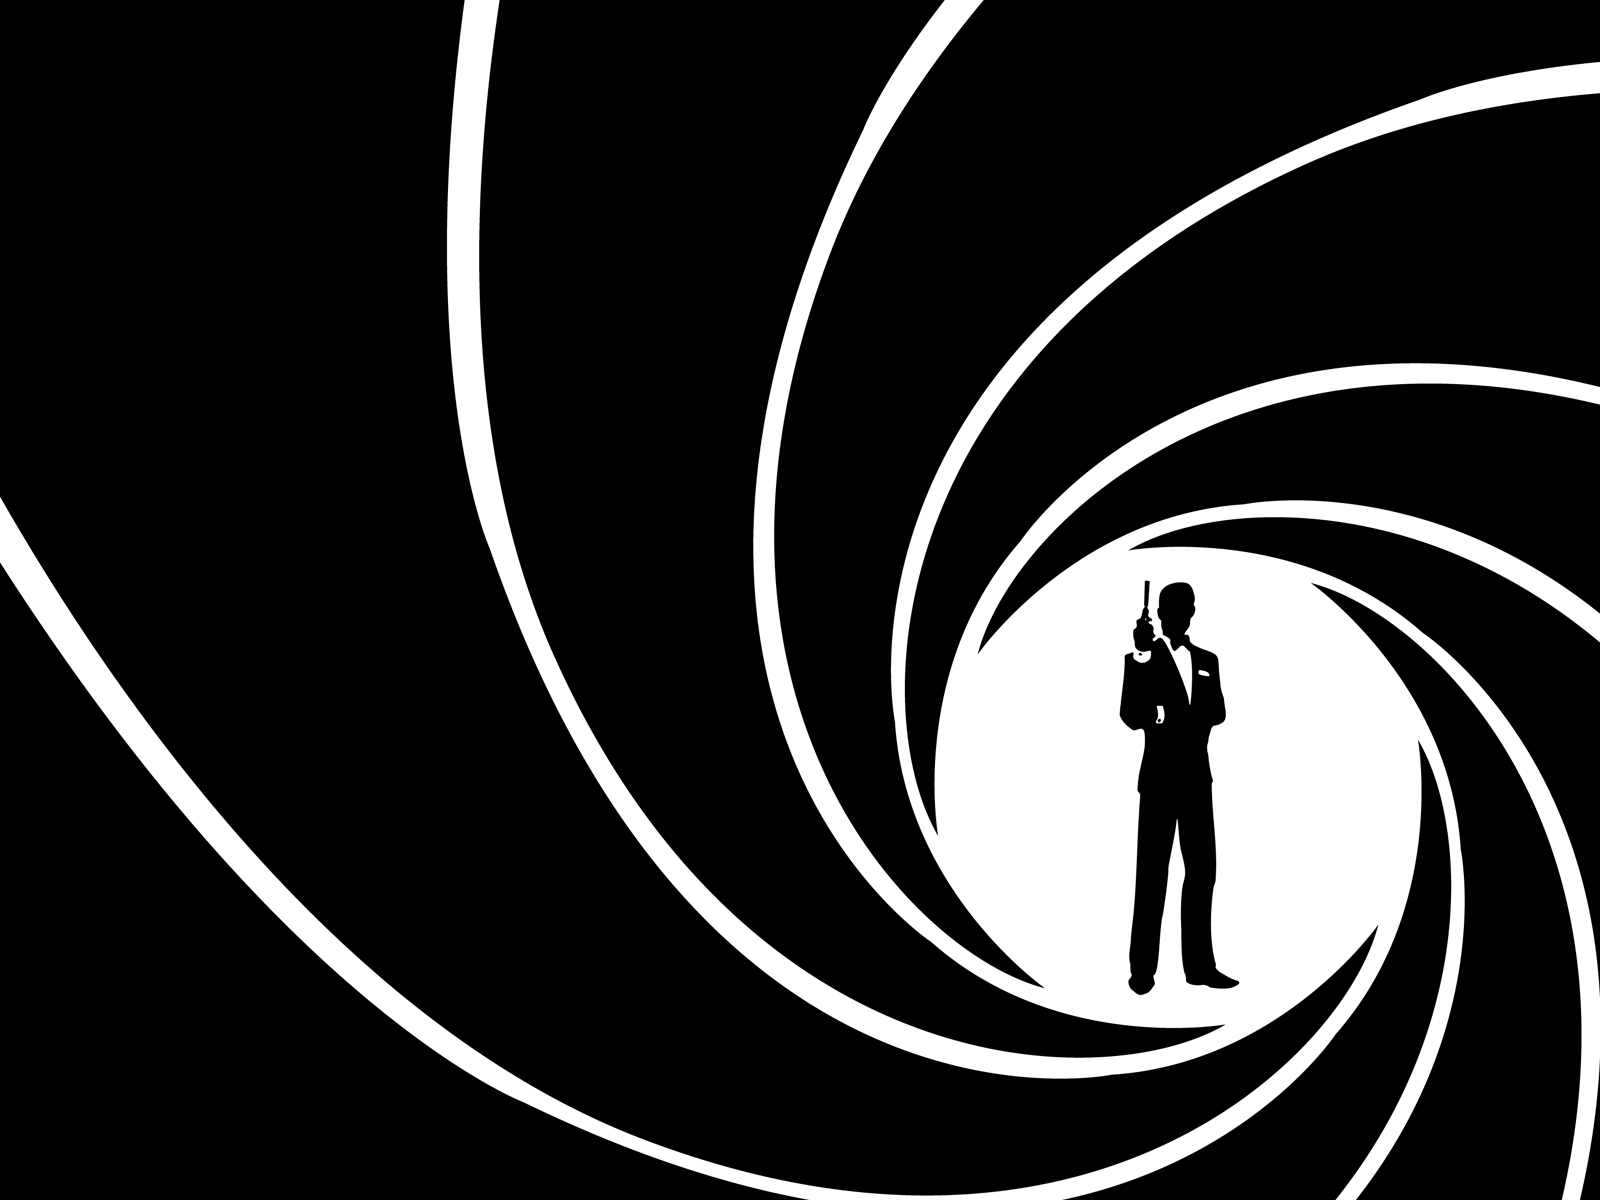 James bond 007 films wallpapers hd